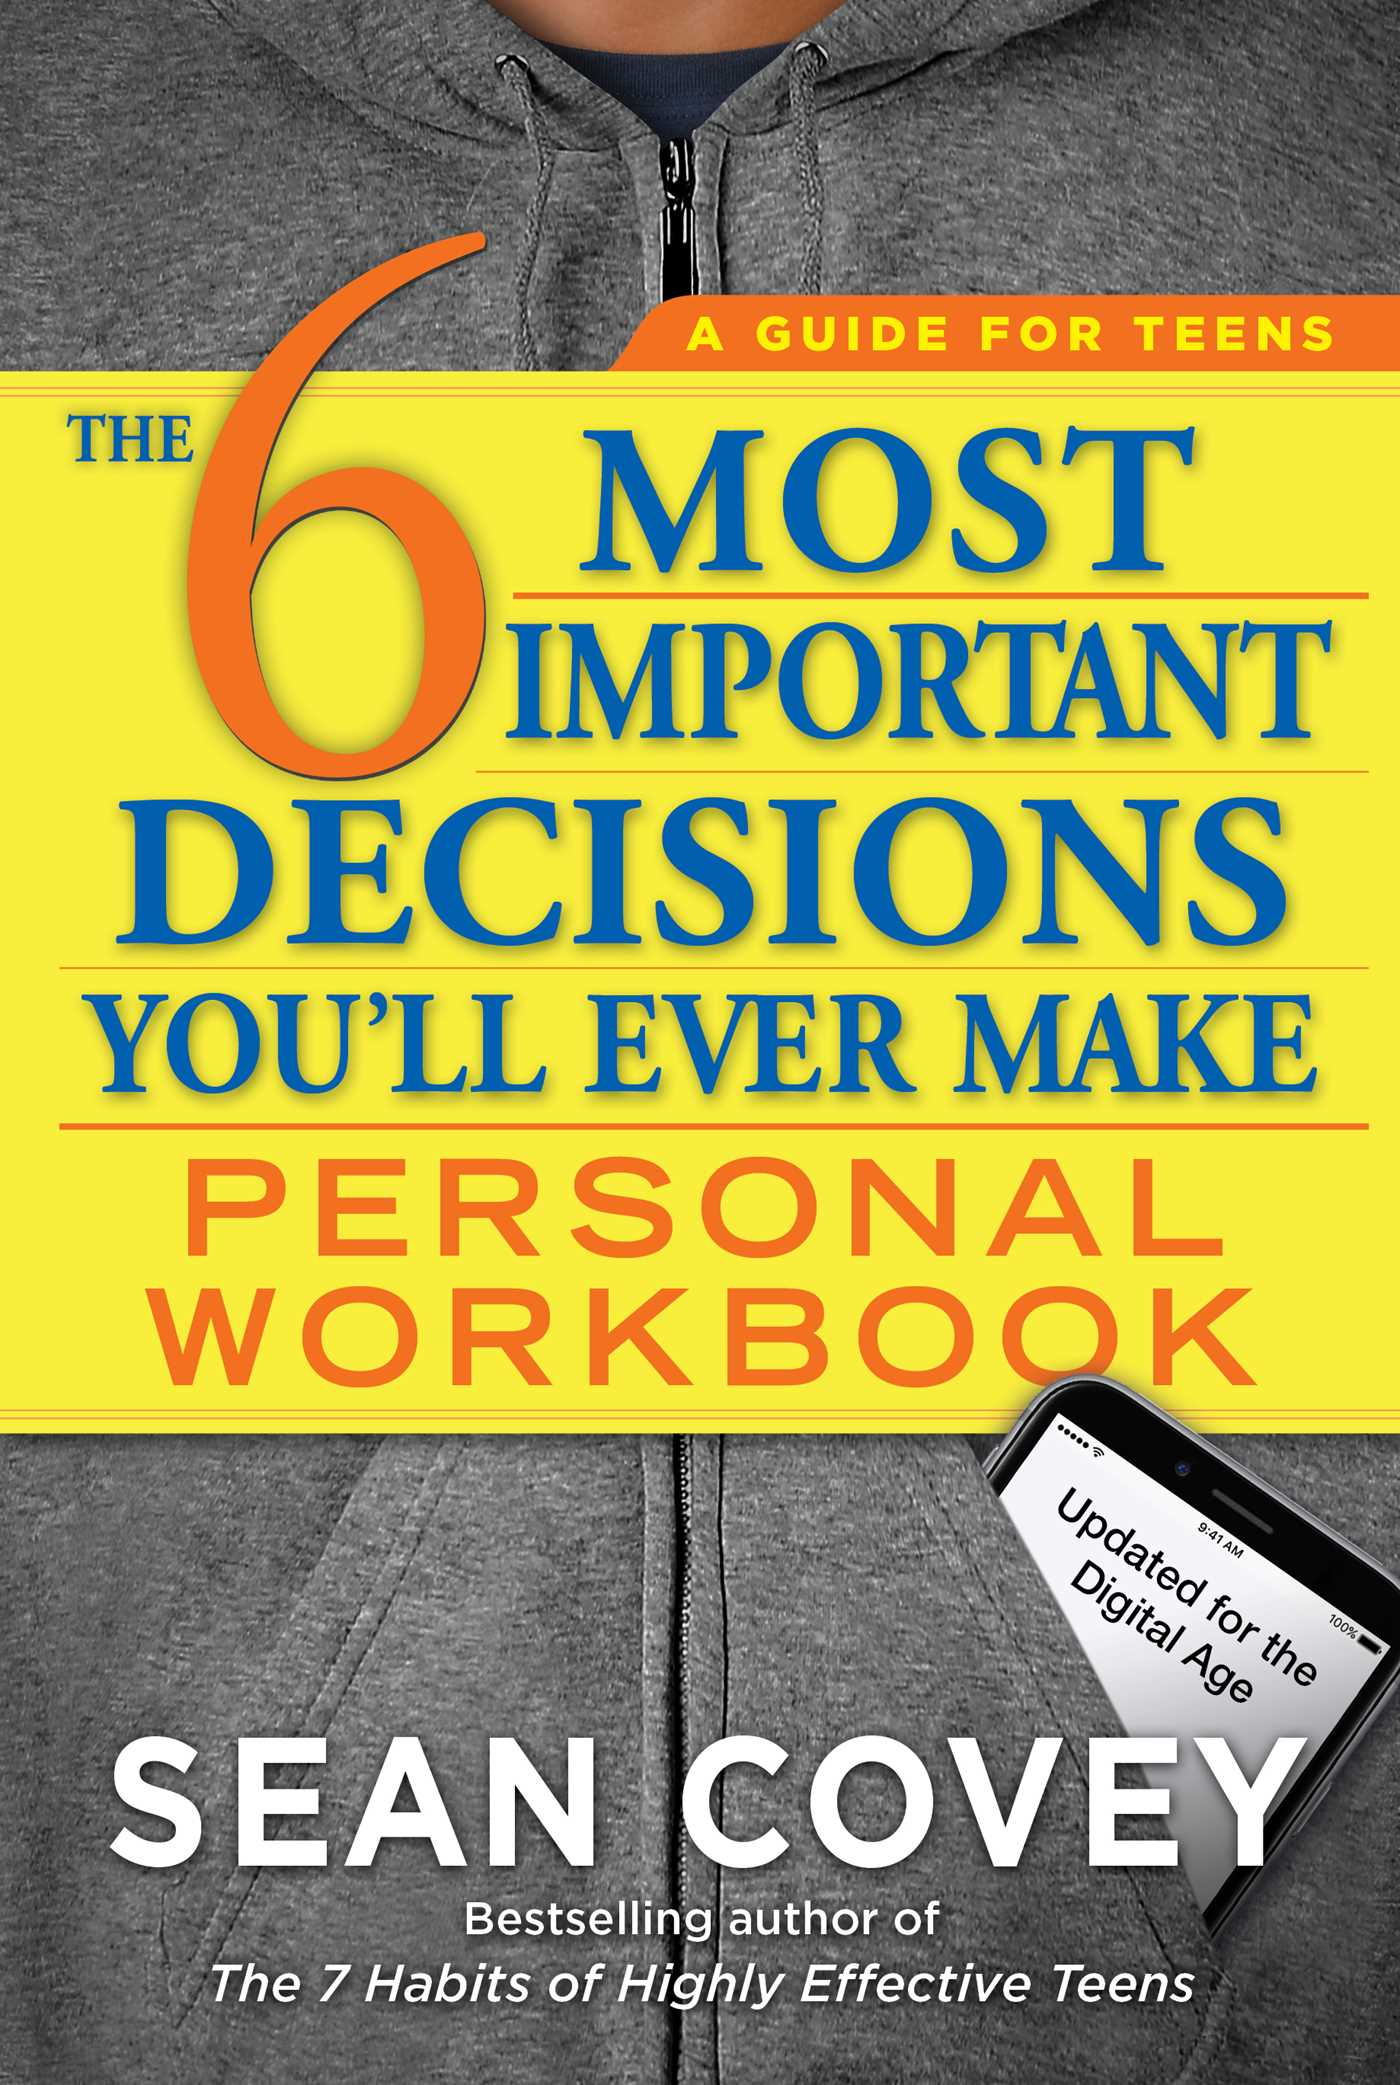 The 6 Most Important Decisions You'll Ever Make Personal